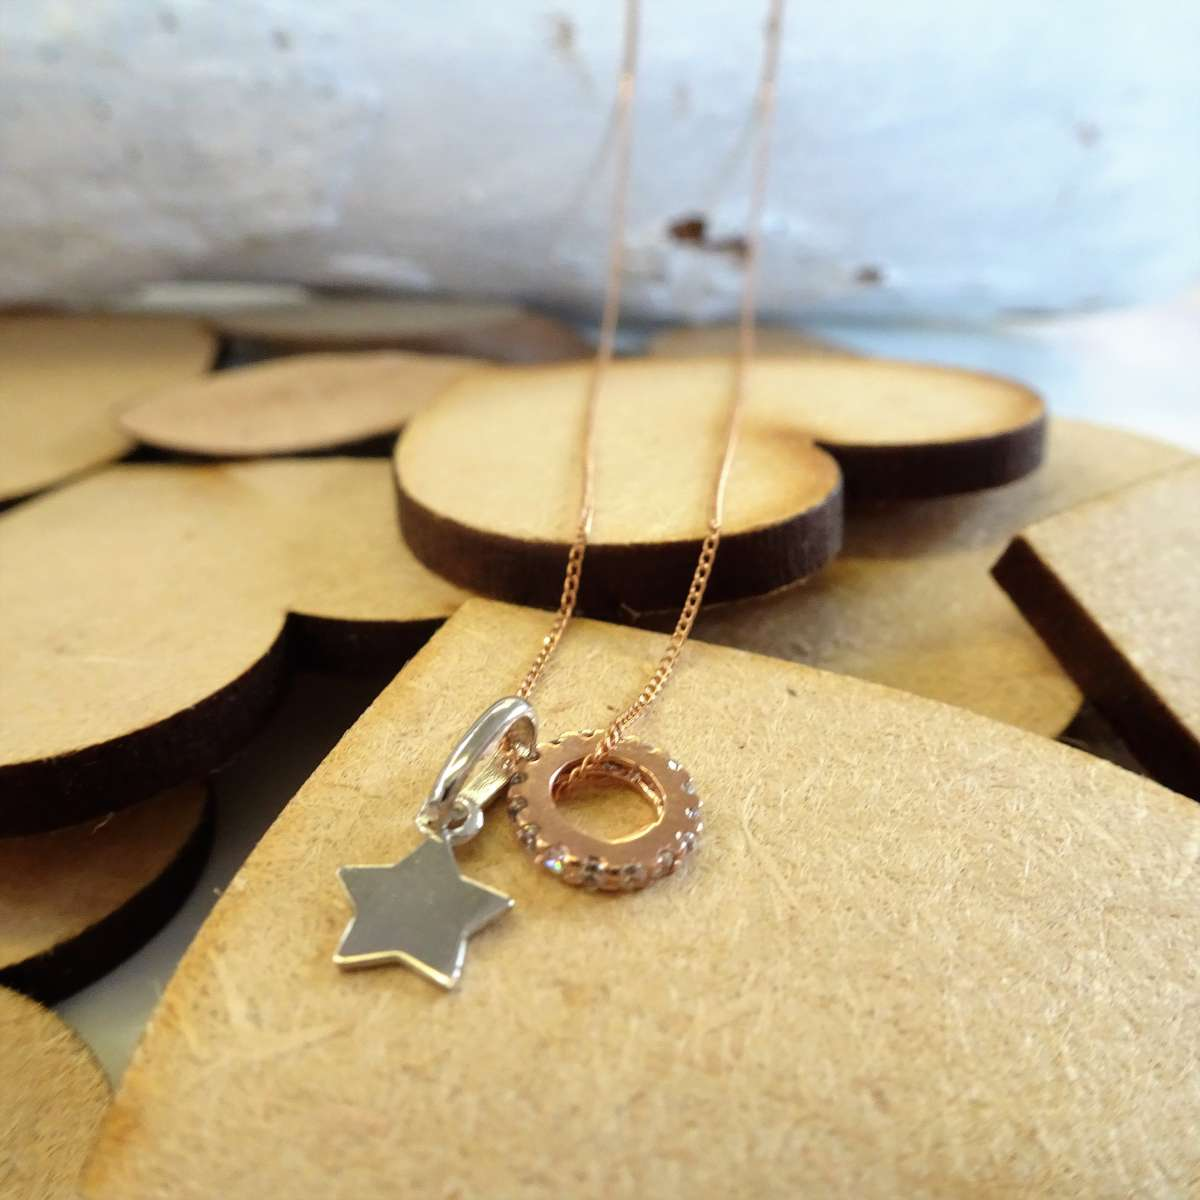 Alterative image for 9ct Gold Star & CZ Wheel Necklace on Diamond Cut Curb Chain